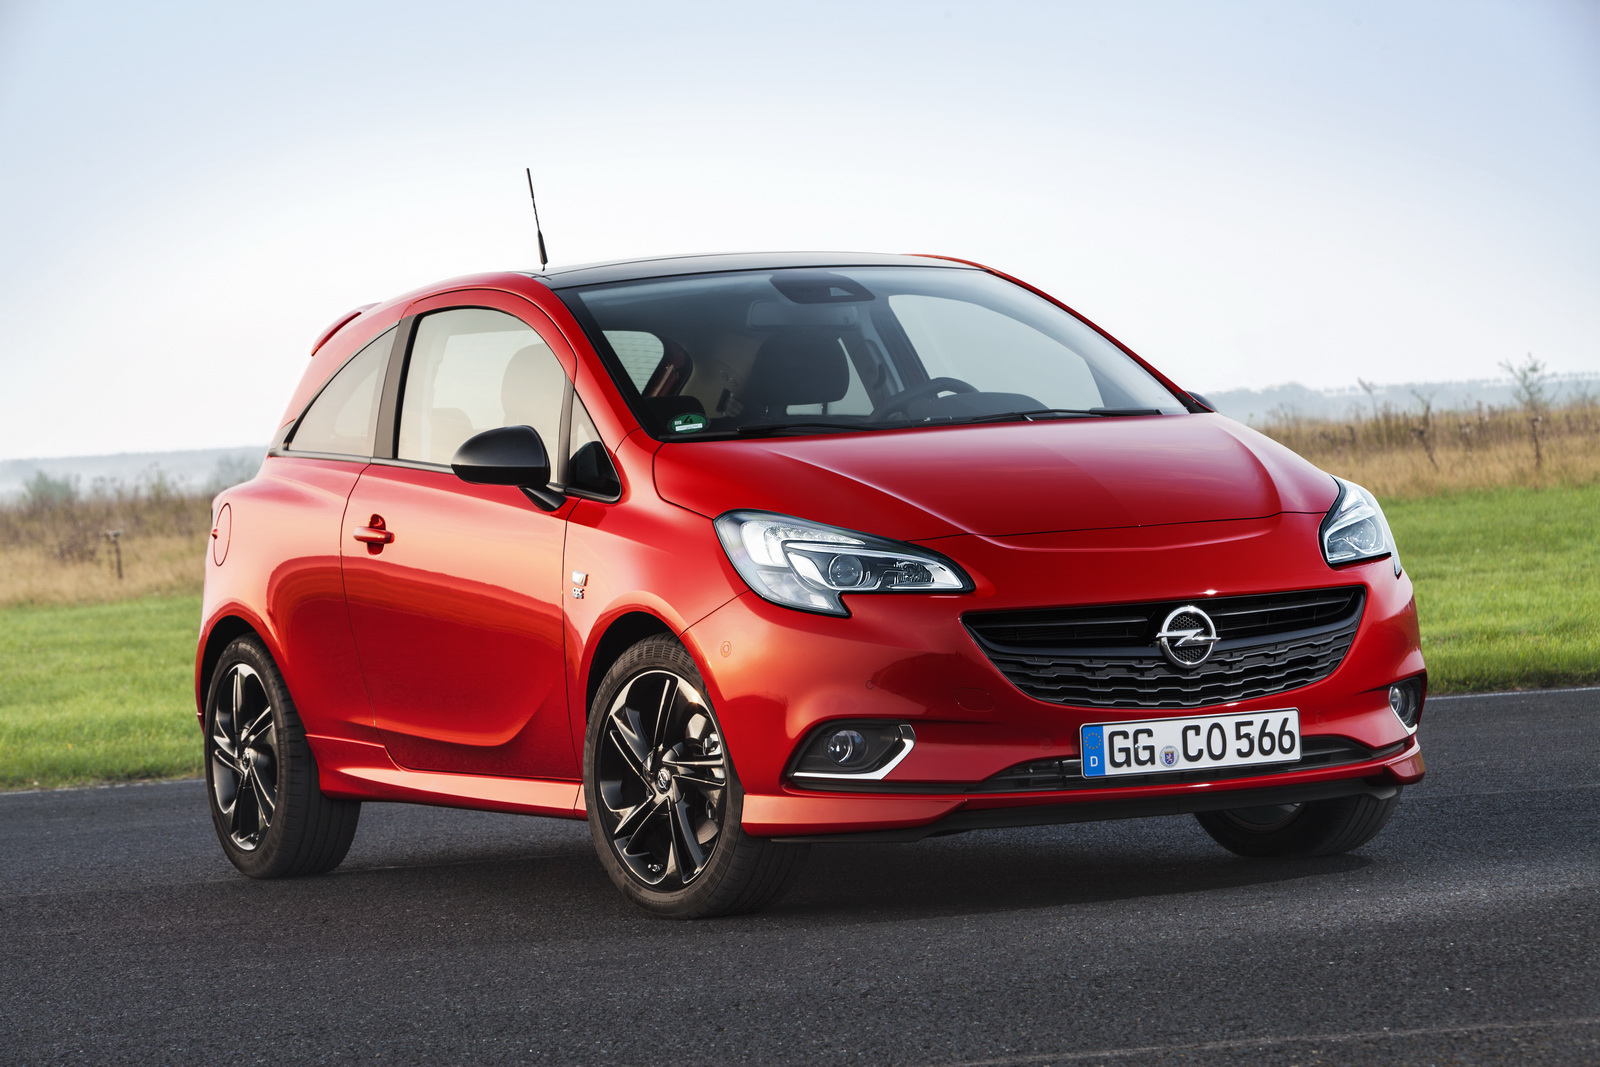 Spy Snap Of The Innovated Opel Corsa